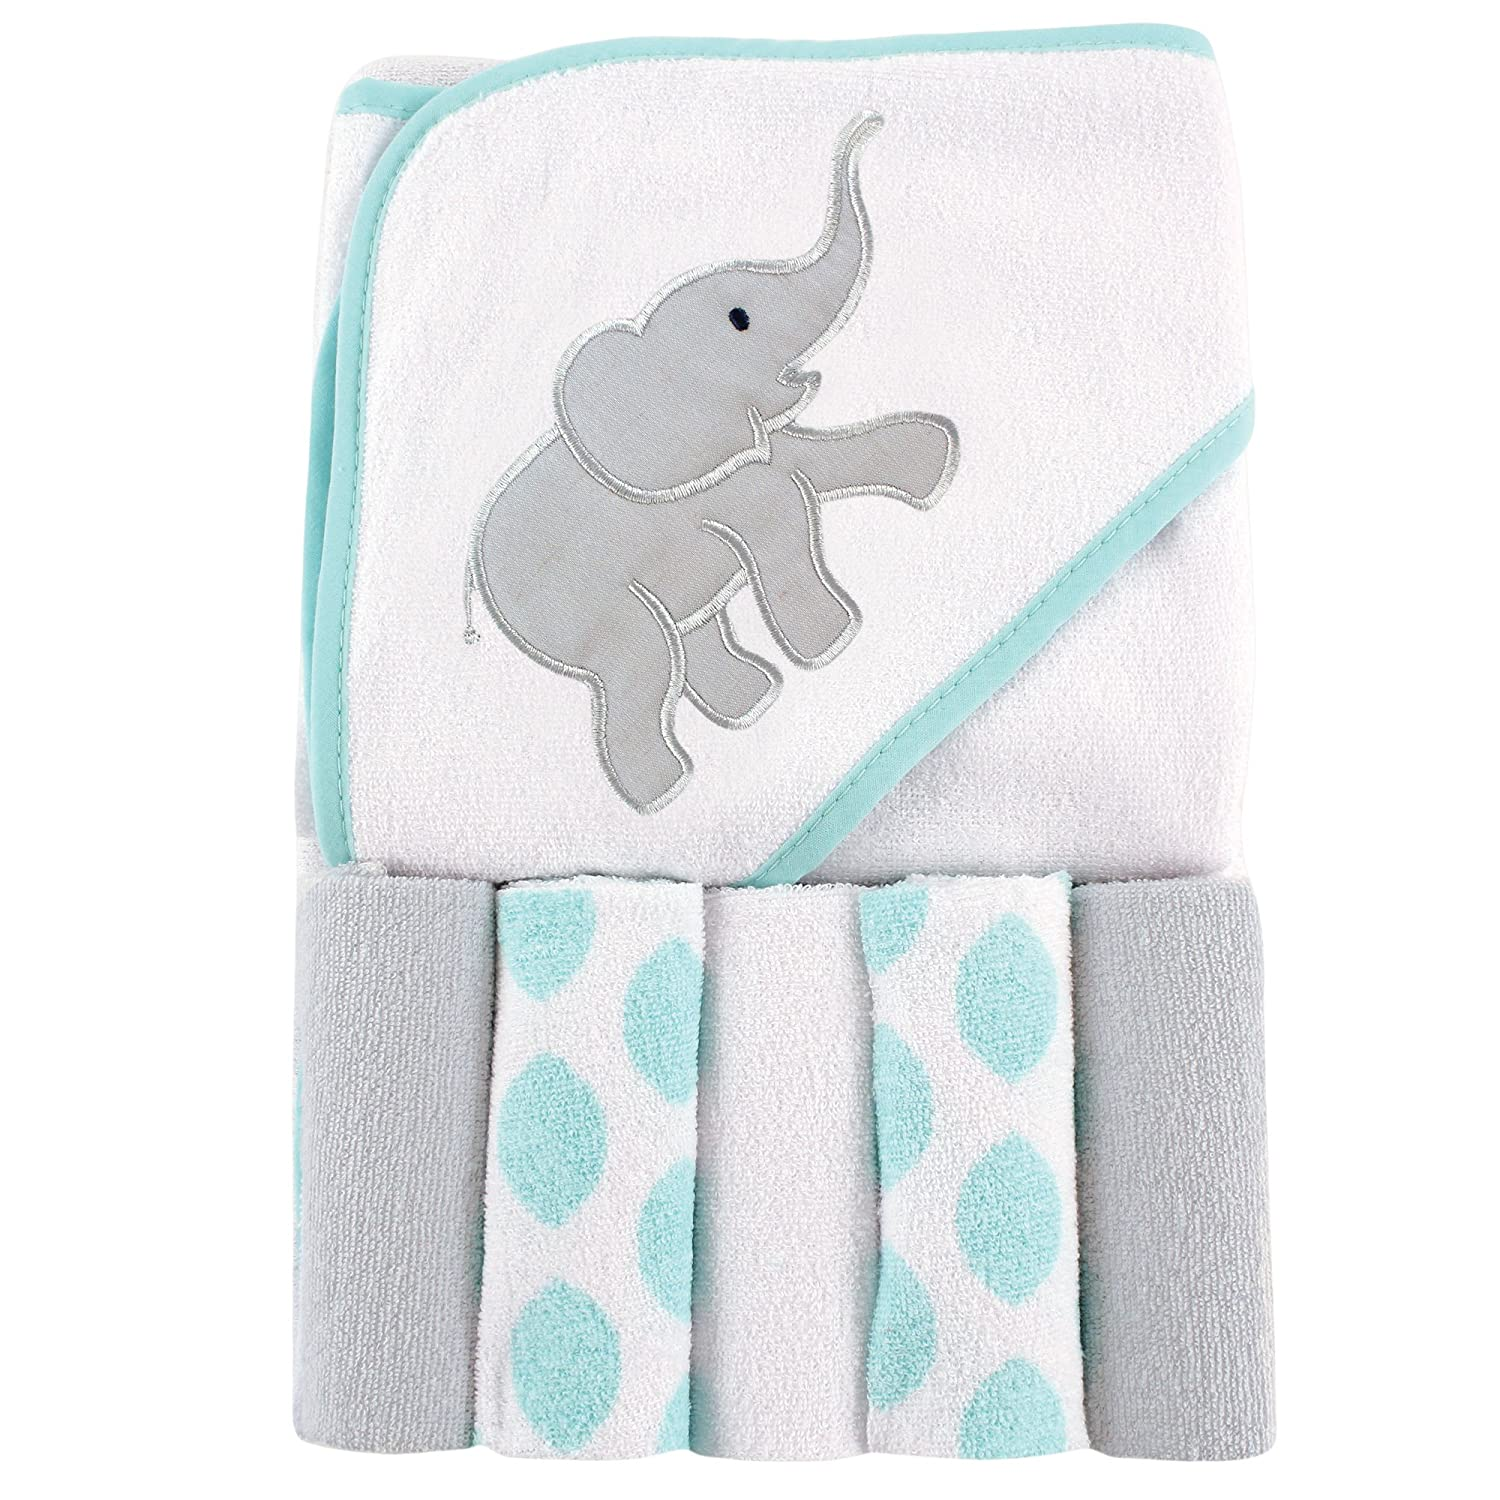 Luvable Friends Hooded Towel and 5 Washcloths, Tugboat 05247_Tugboat